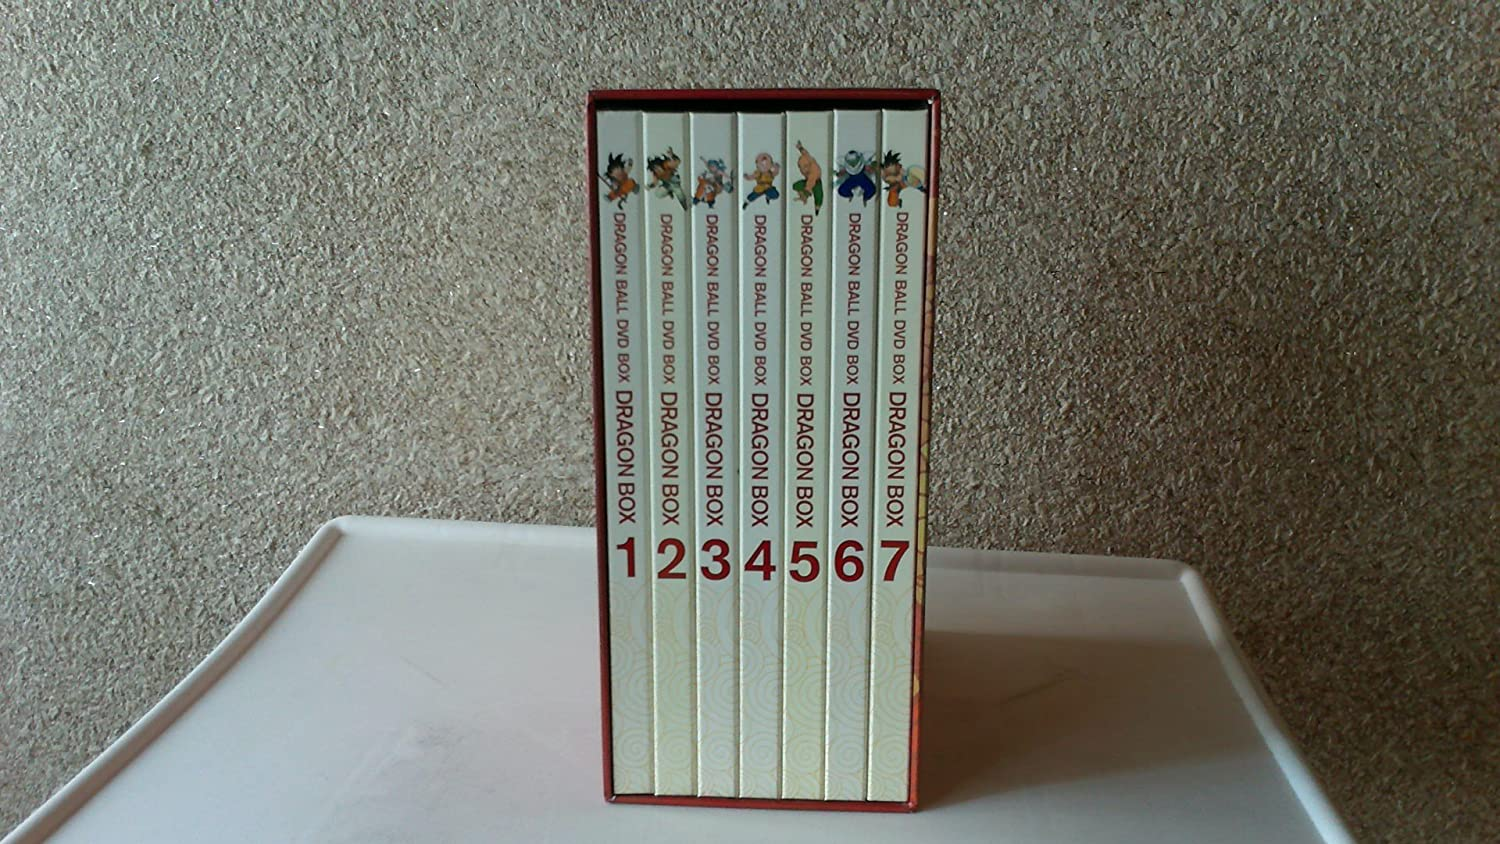 【海外輸入】 DRAGON BALL DVD DVD B00018GX9S BOX DRAGON BOX BOX B00018GX9S, ZECOO COLOR:25c10bde --- a0267596.xsph.ru